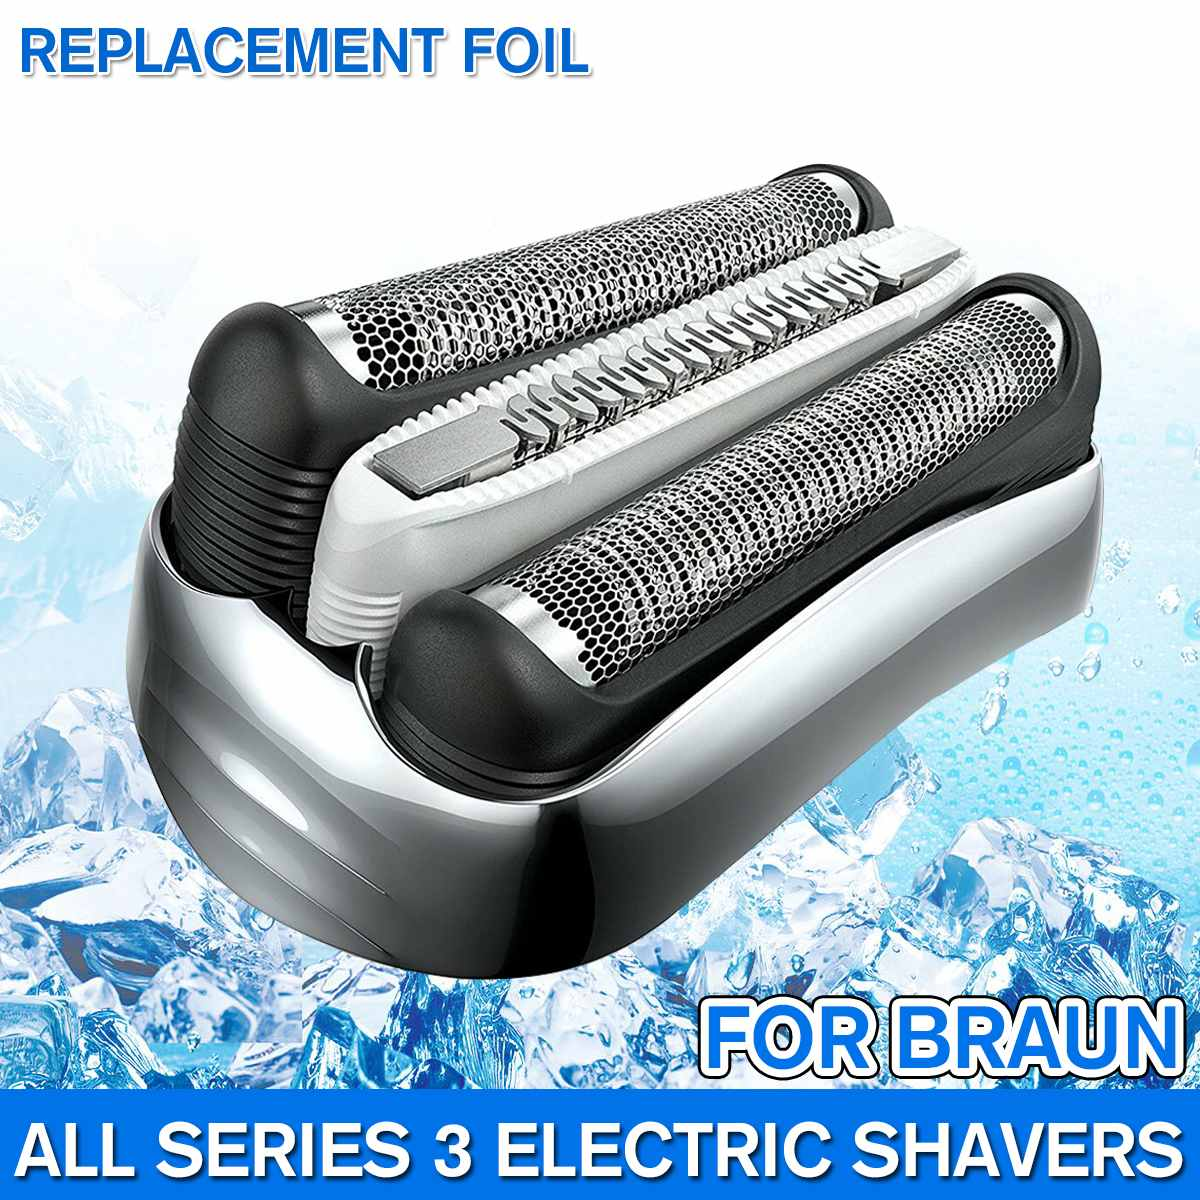 Replacement Shaver Foil Head For Braun 32B 32S 21B All Series 3 Shavers 5776 5415 5772 3040cc 3050cc 3080cc 300s 310s Blade